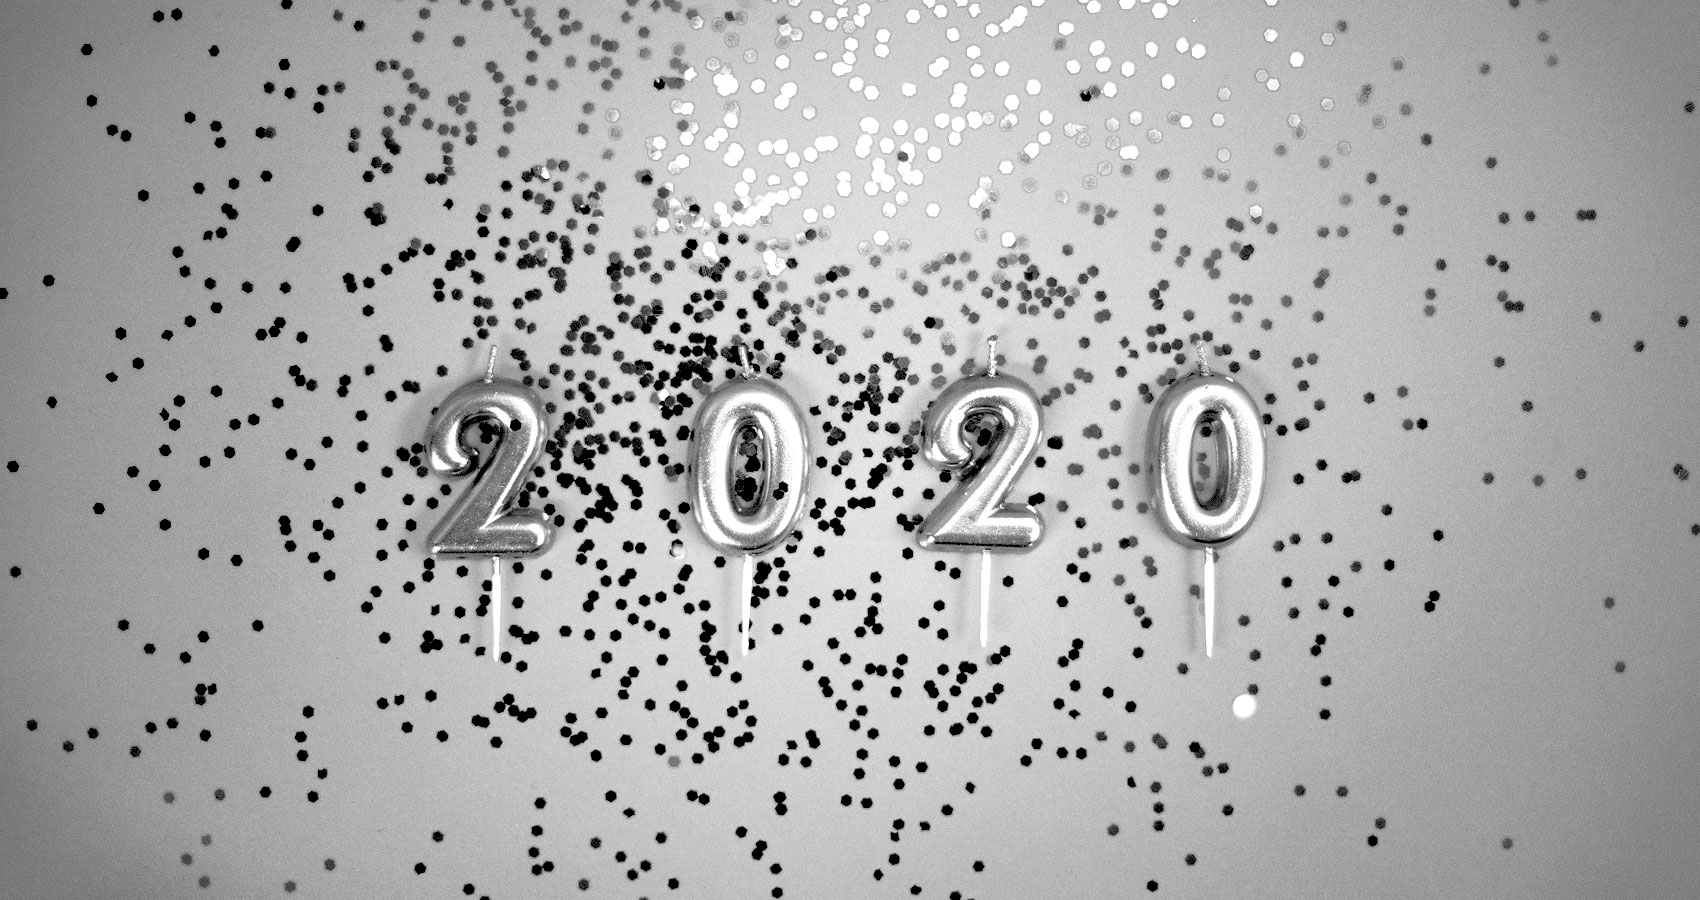 2020, poetry written by Bill Fuller at Spillwords.com